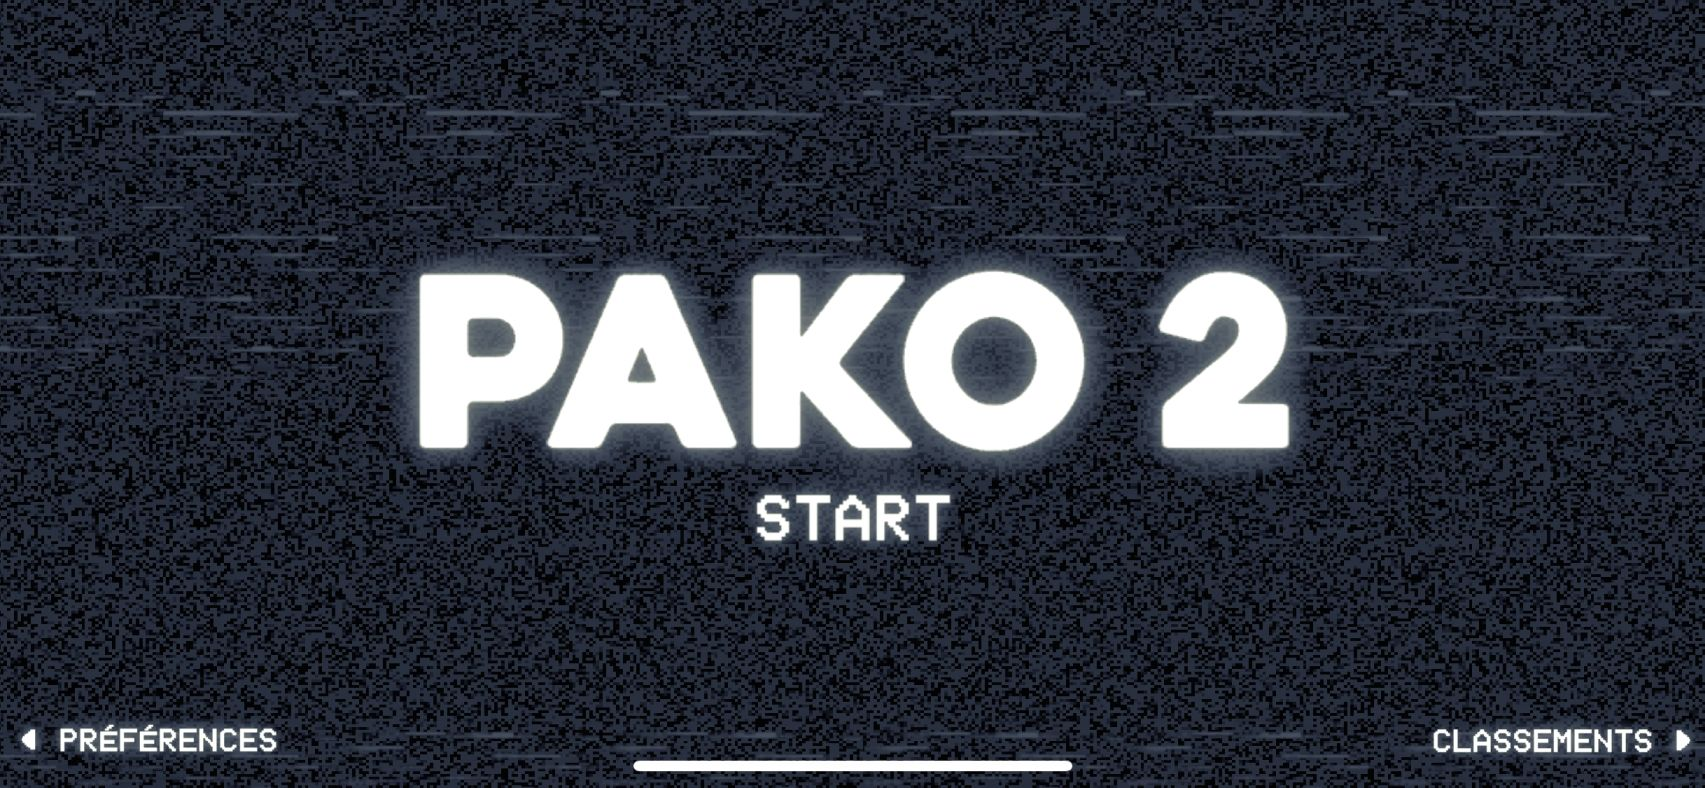 PAKO 2 (copie d'écran 1 sur iPhone / iPad)